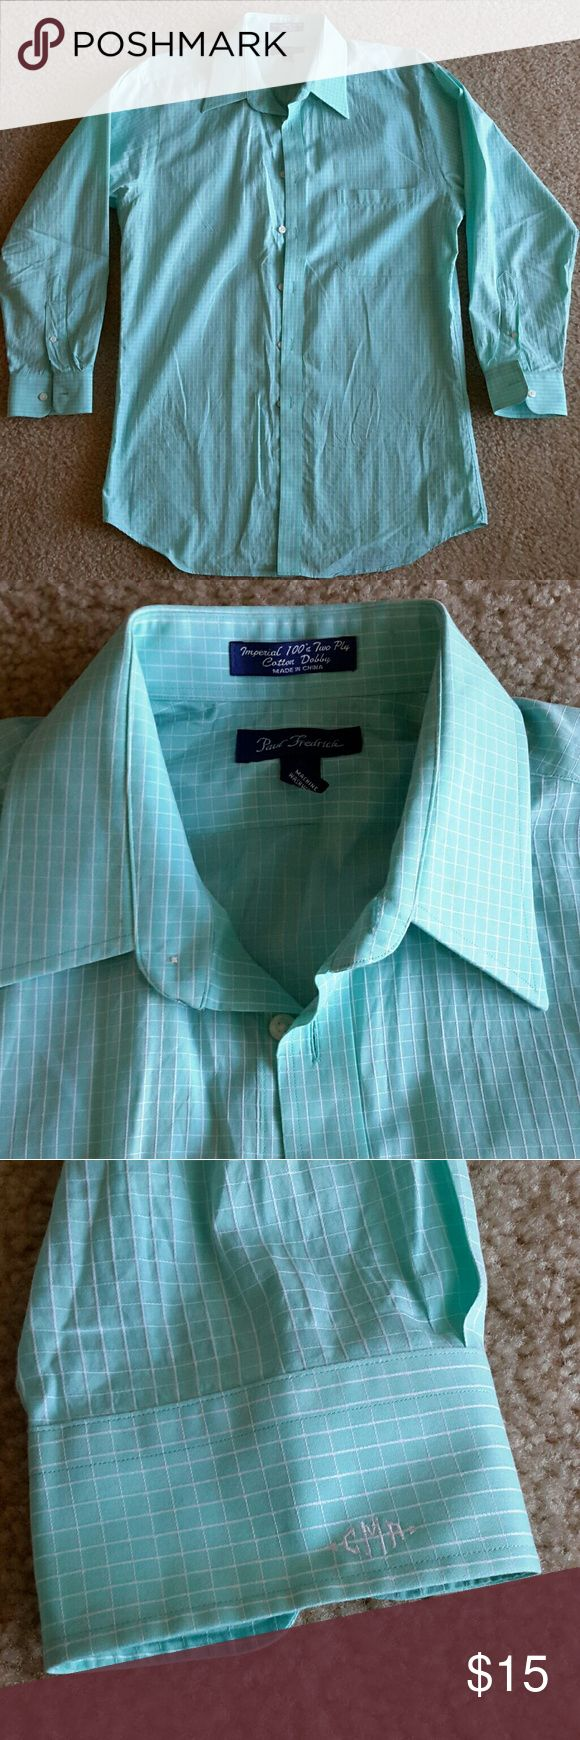 Men's Dress Shirt Aqua/Teal color with White checkers - Trim Fit - Imperial 100's two ply cotton dobby - 100% cotton - CAM embroidered on cuff Paul Fredrick Shirts Dress Shirts